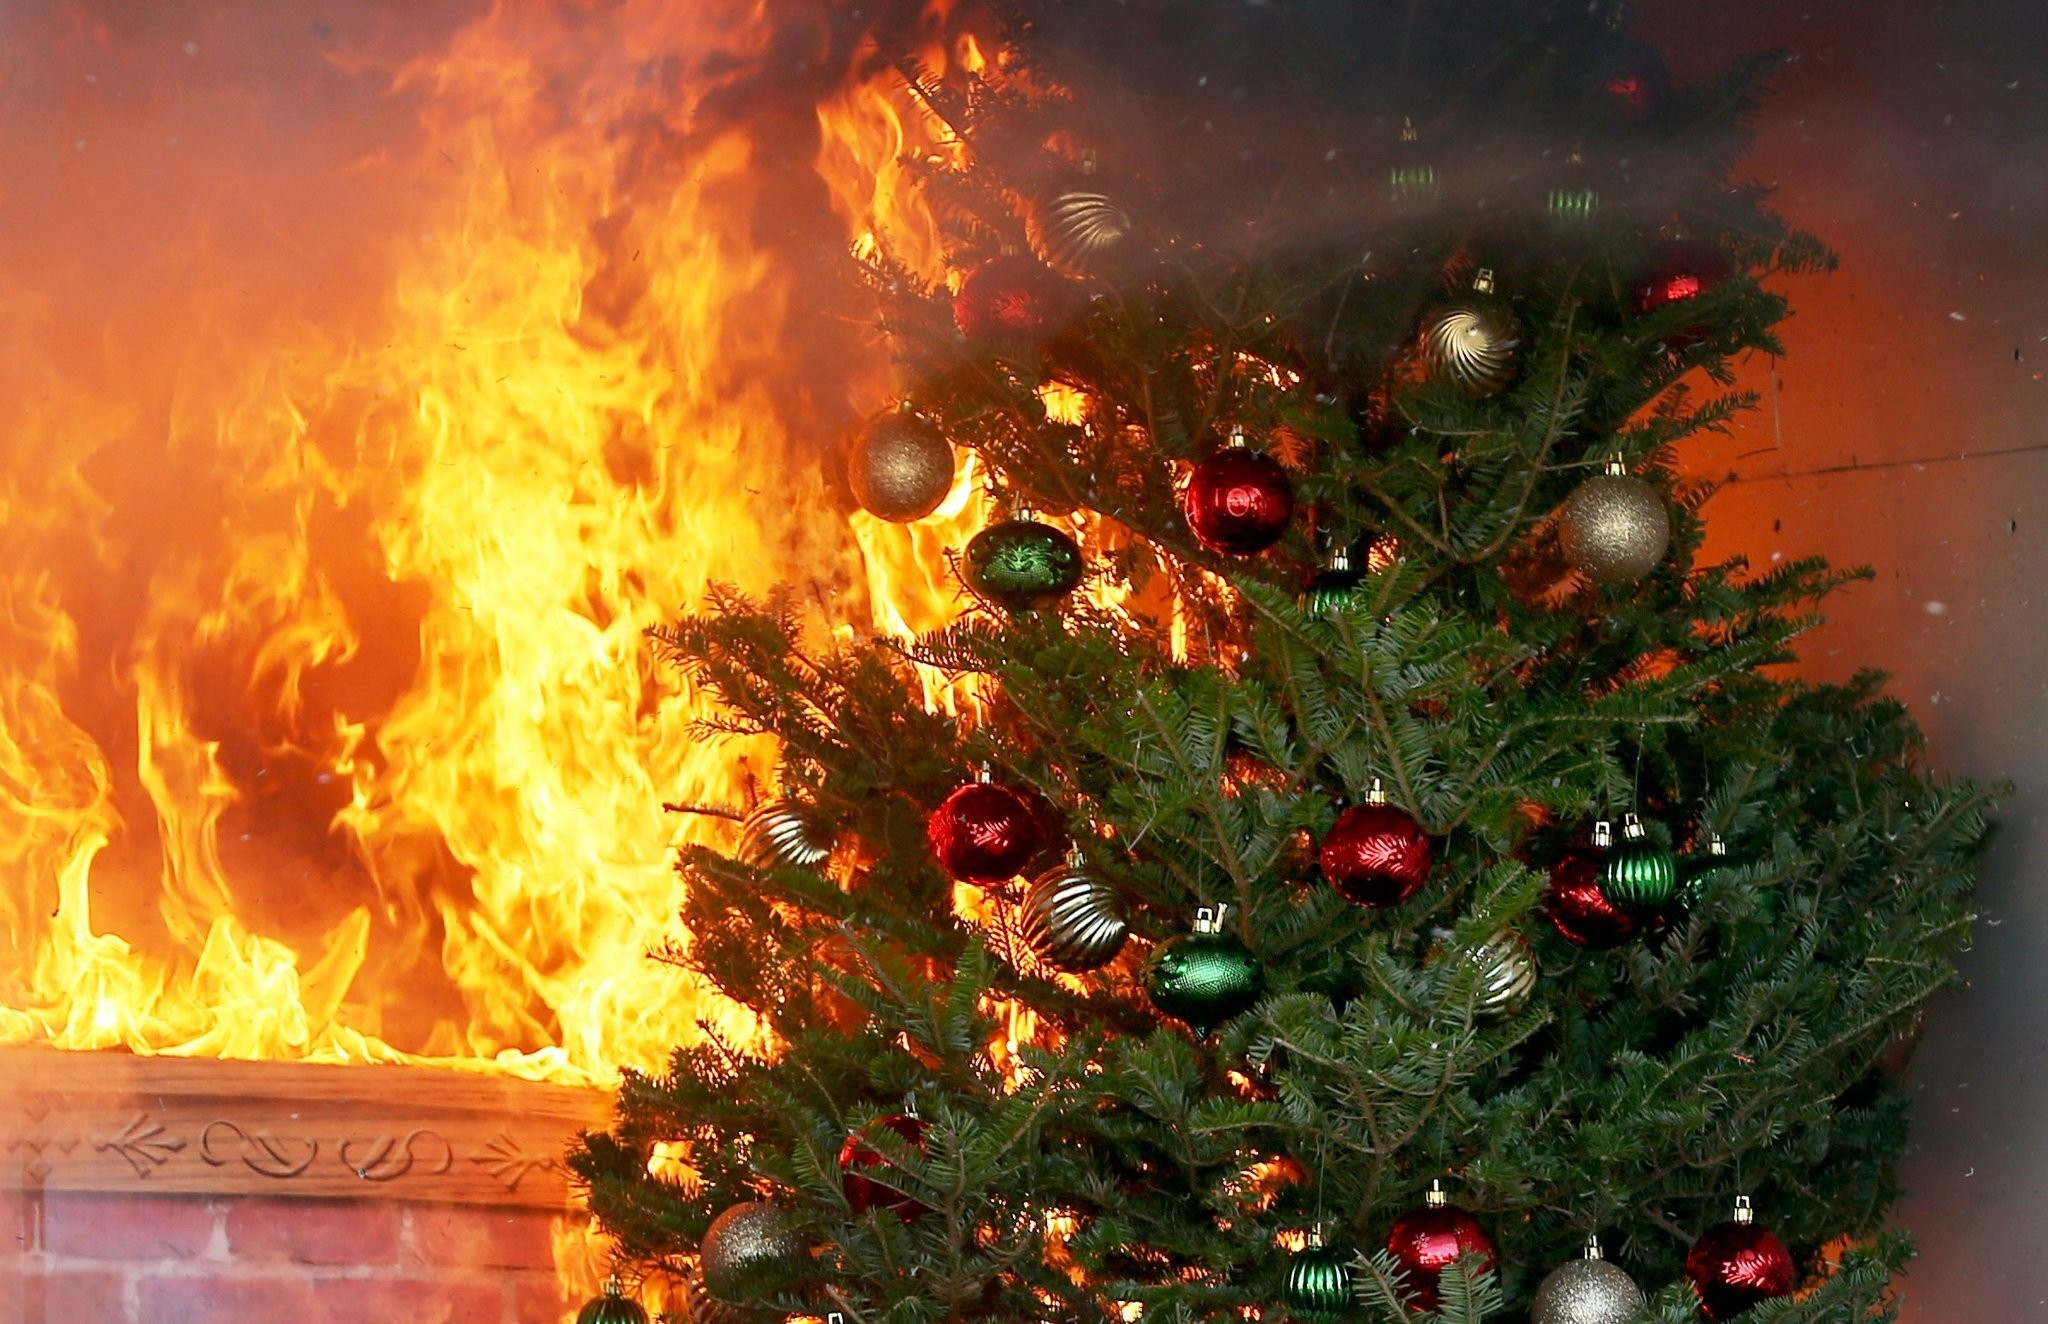 Christmas Tree On Fire.From Heaters To Christmas Trees Fire Safety Tips For Winter